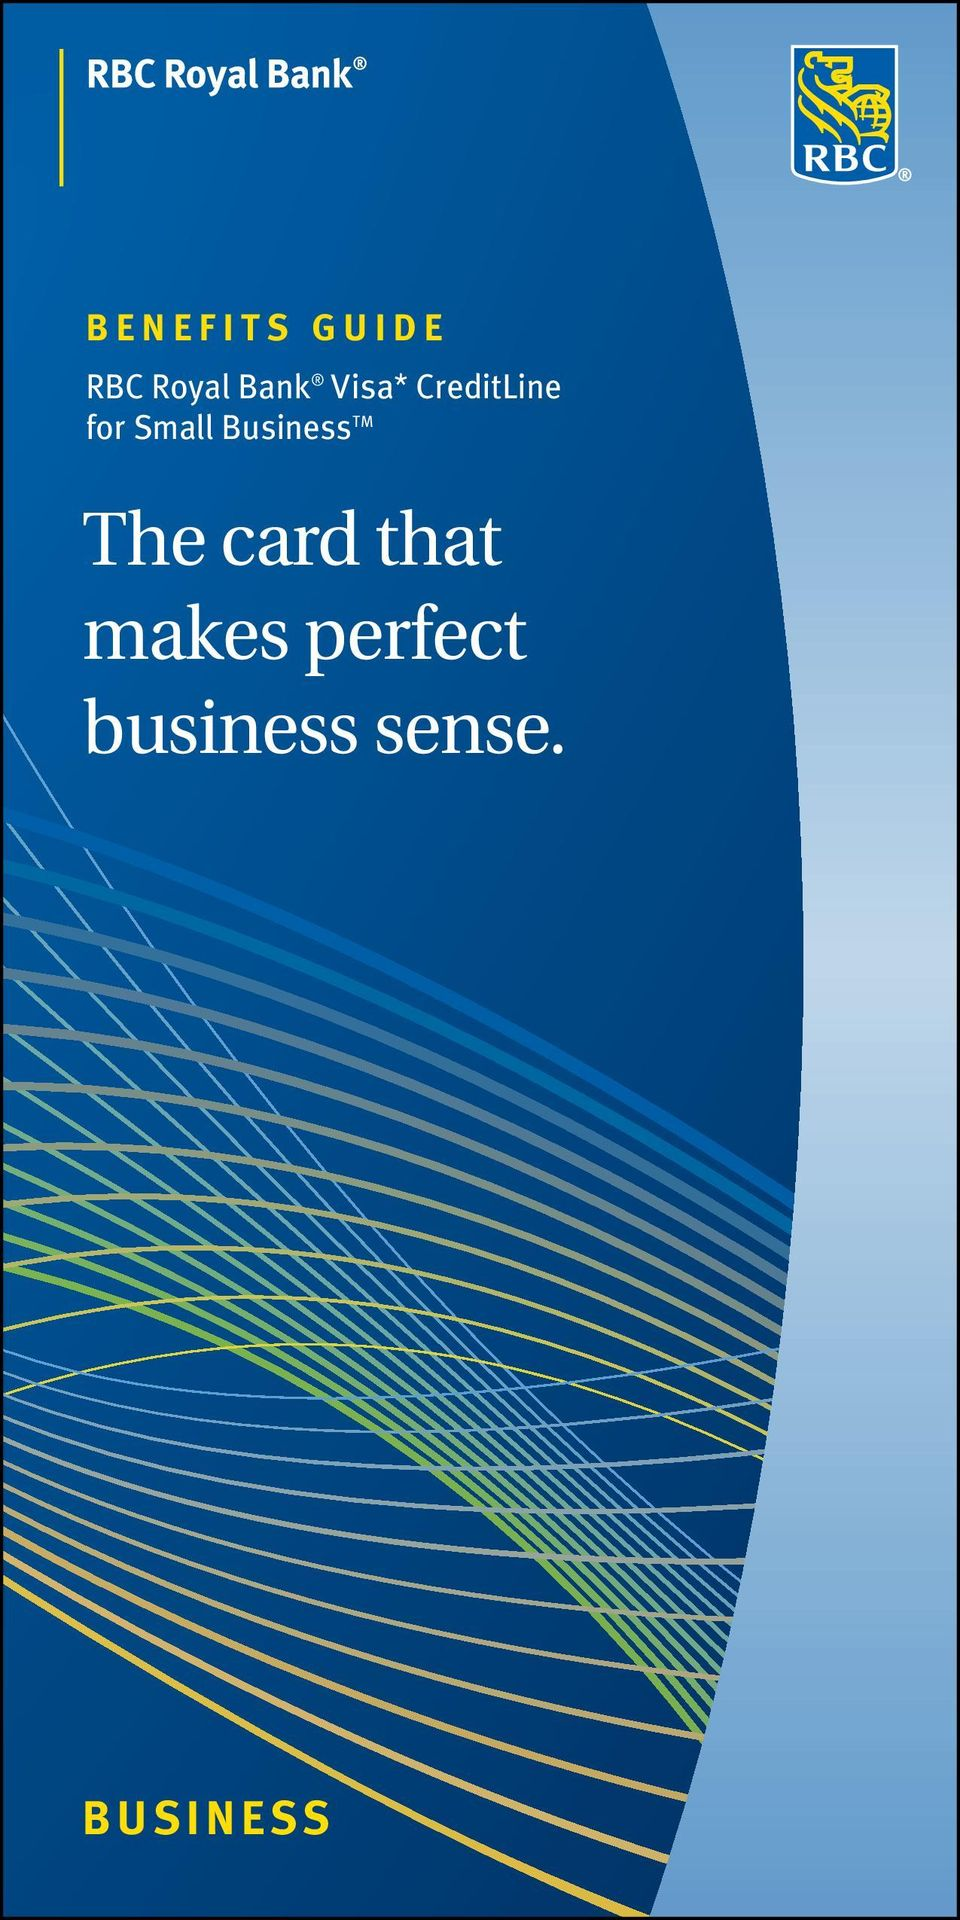 Business TM The card that